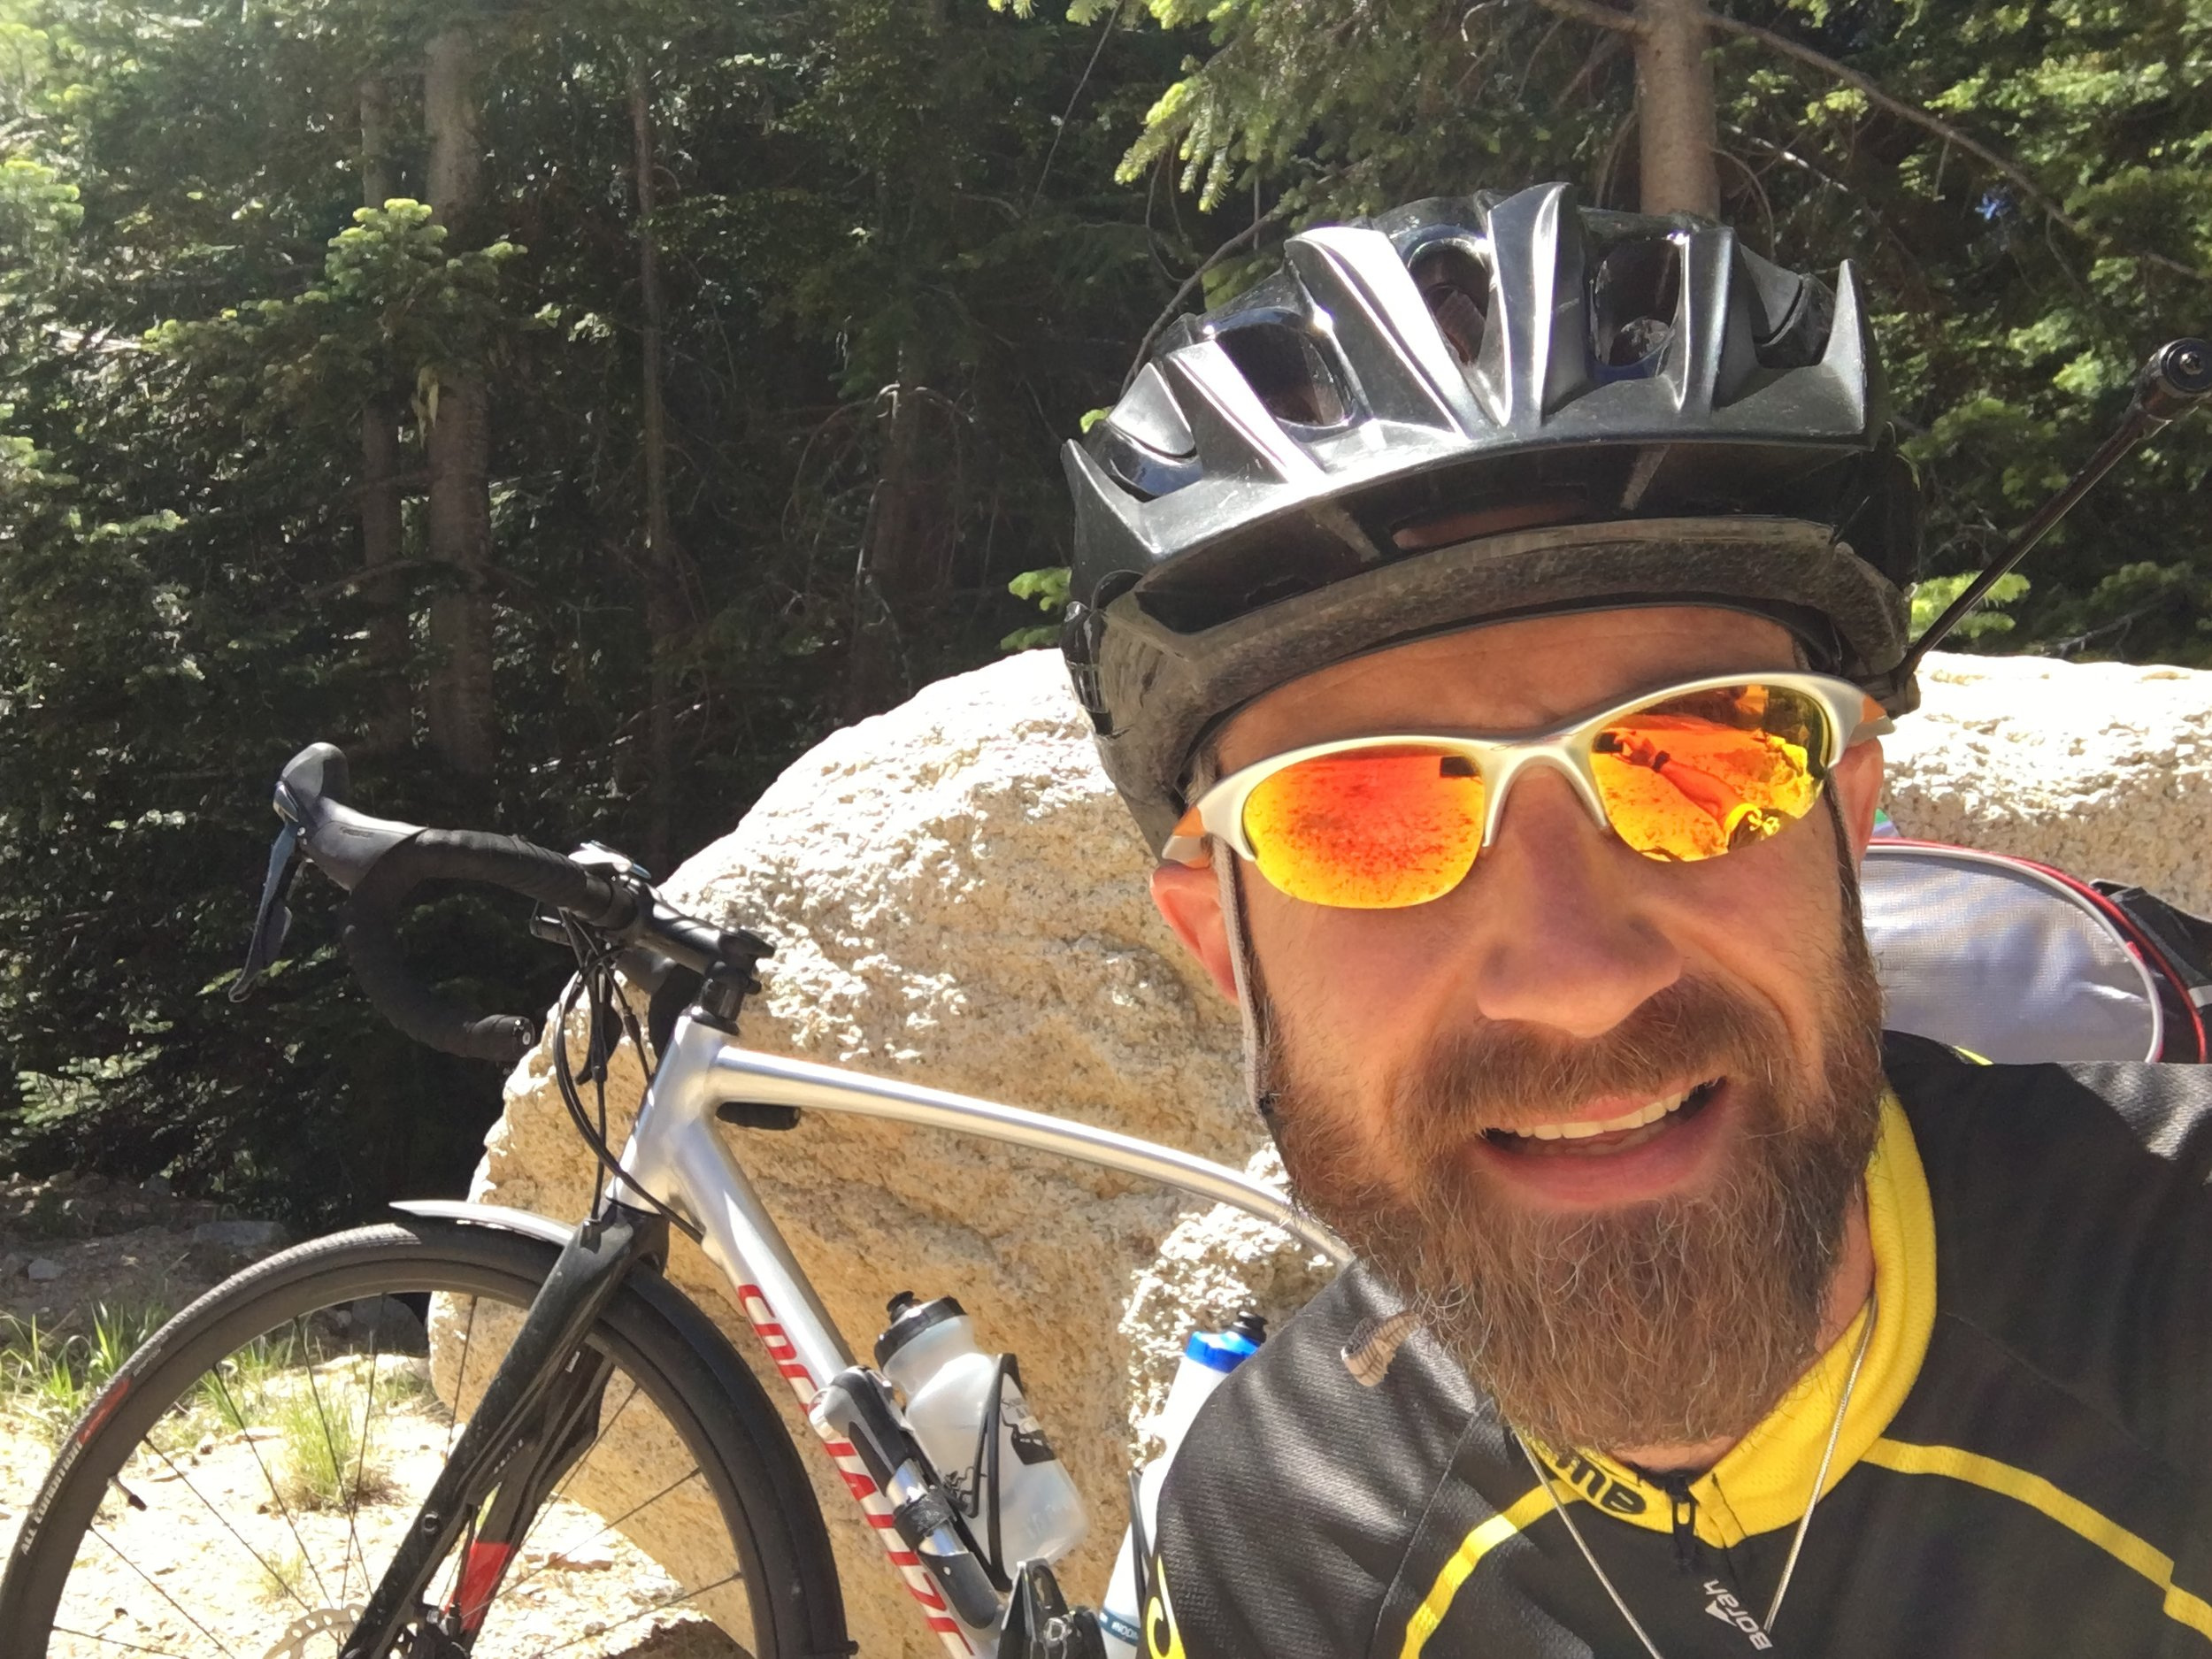 Selfie break with my Specialized Diverge in the background heading up the pass.